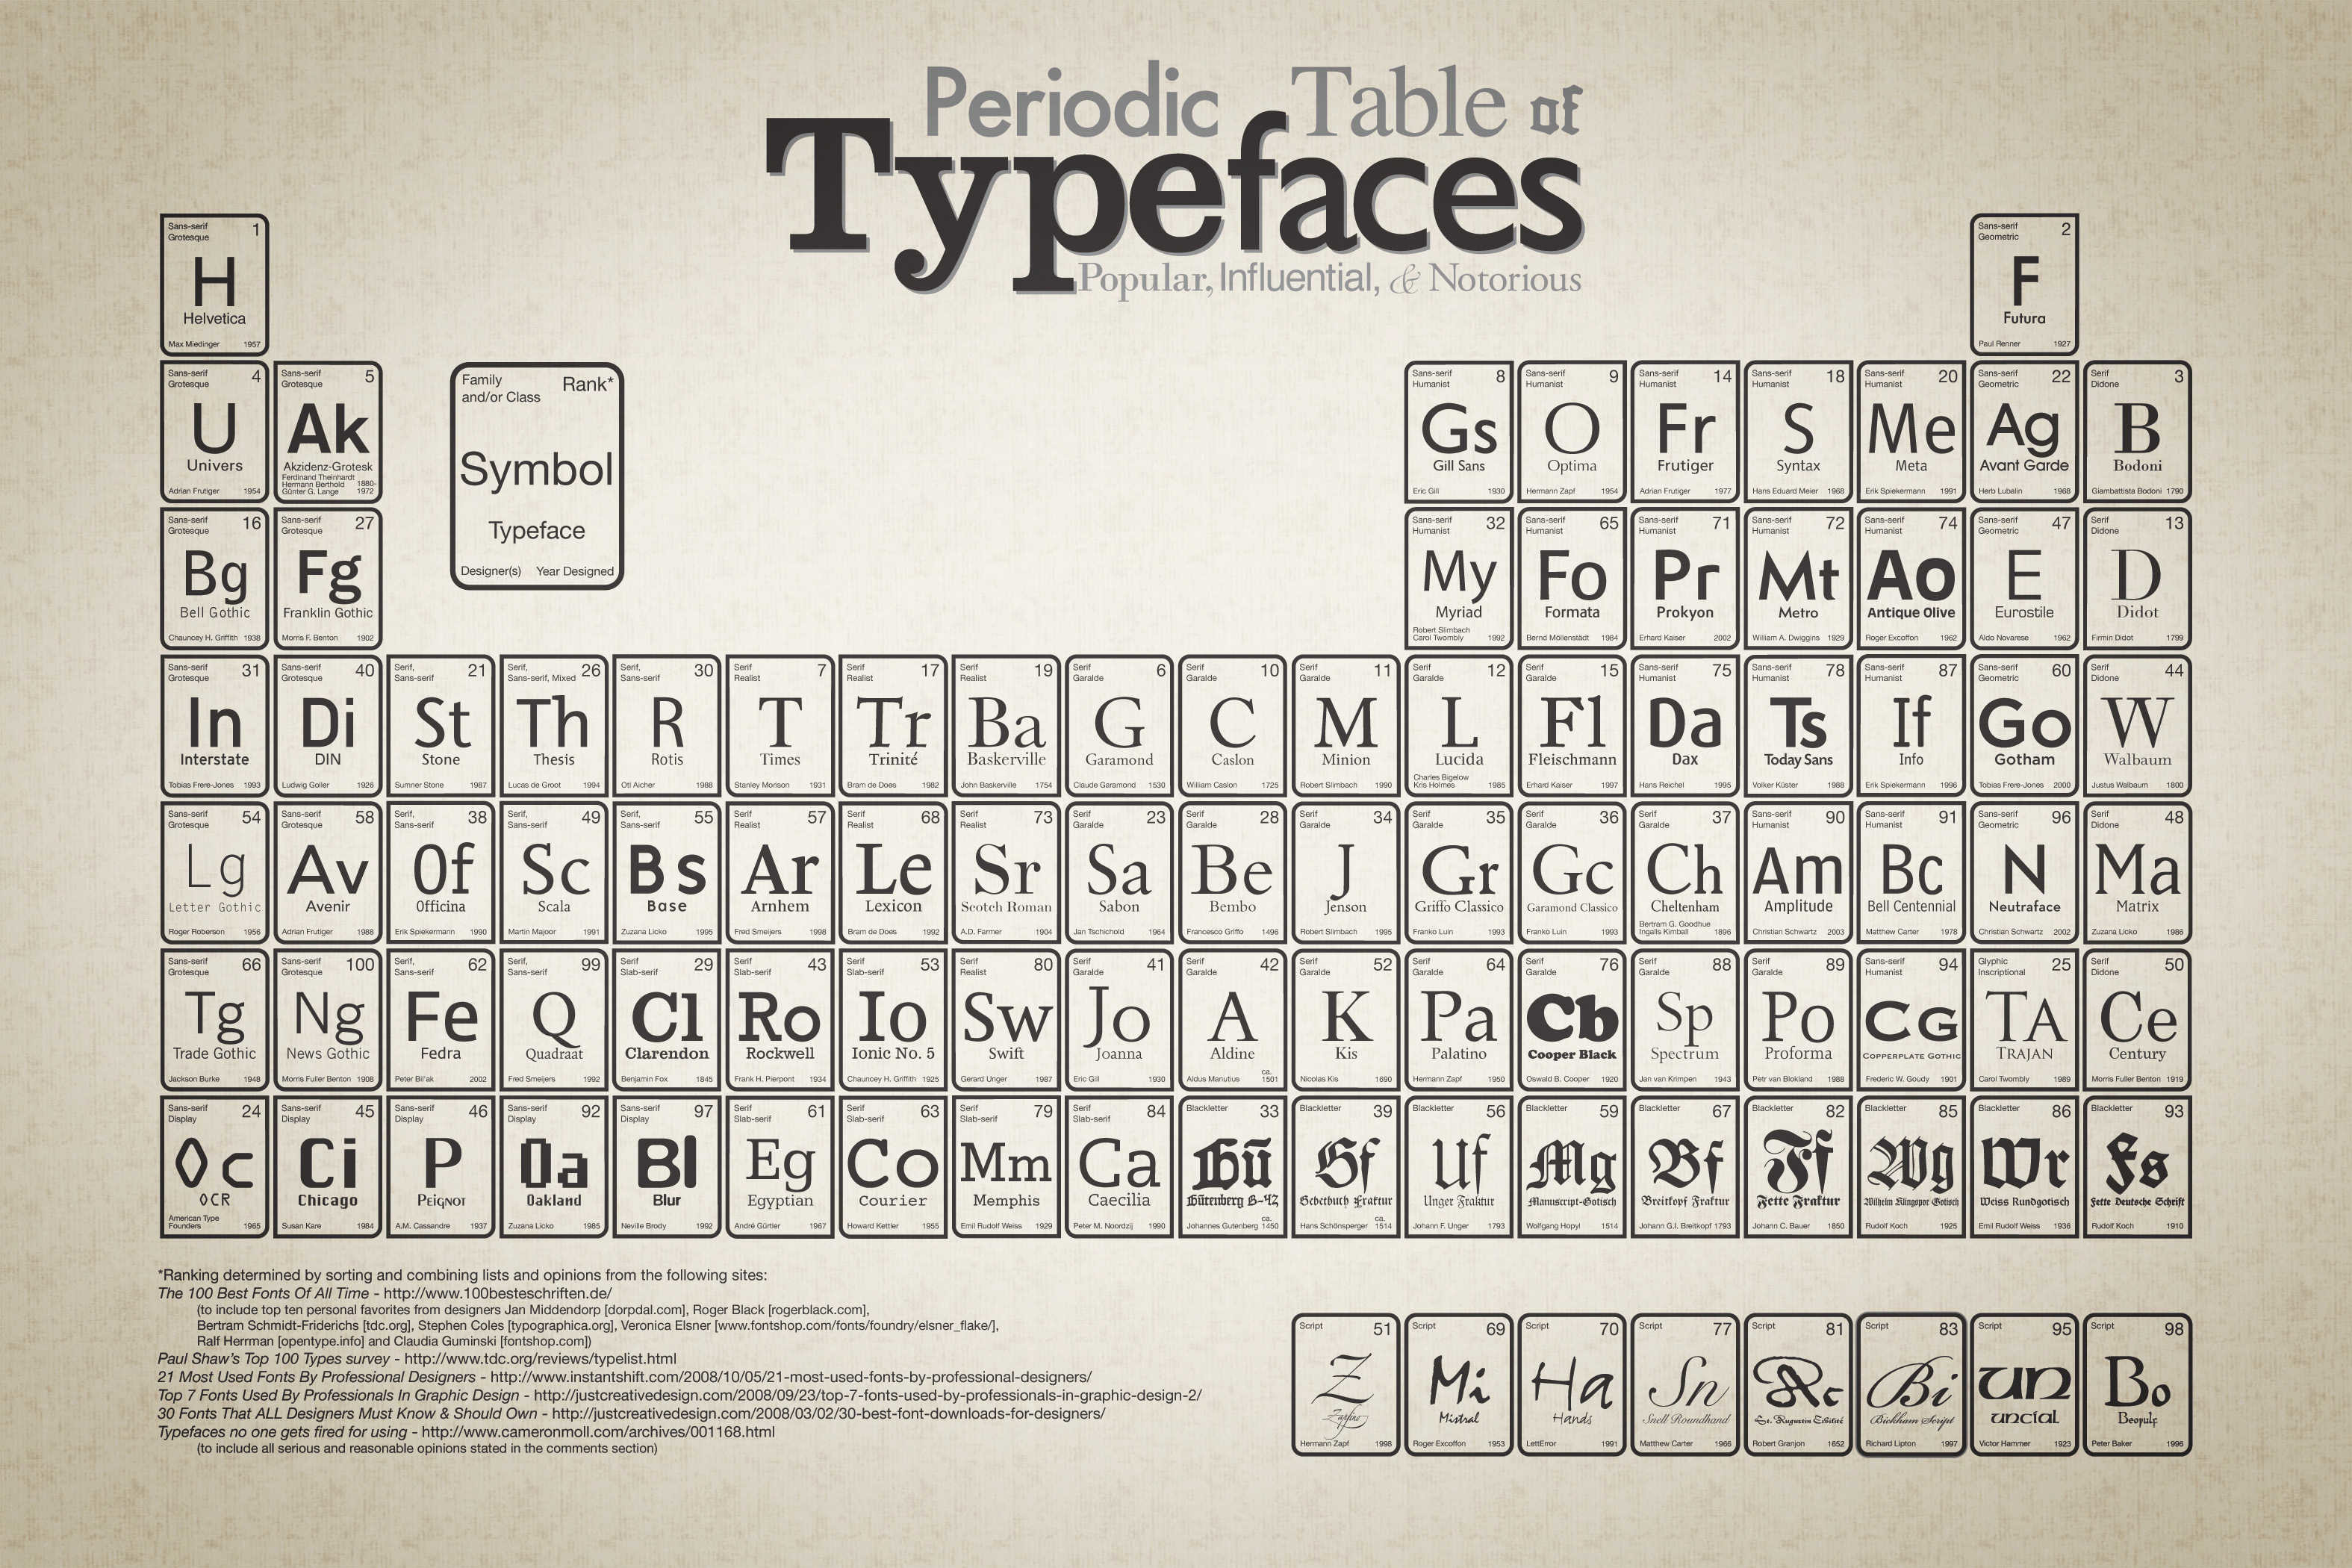 Typeface Periodic Table | The Floating Frog